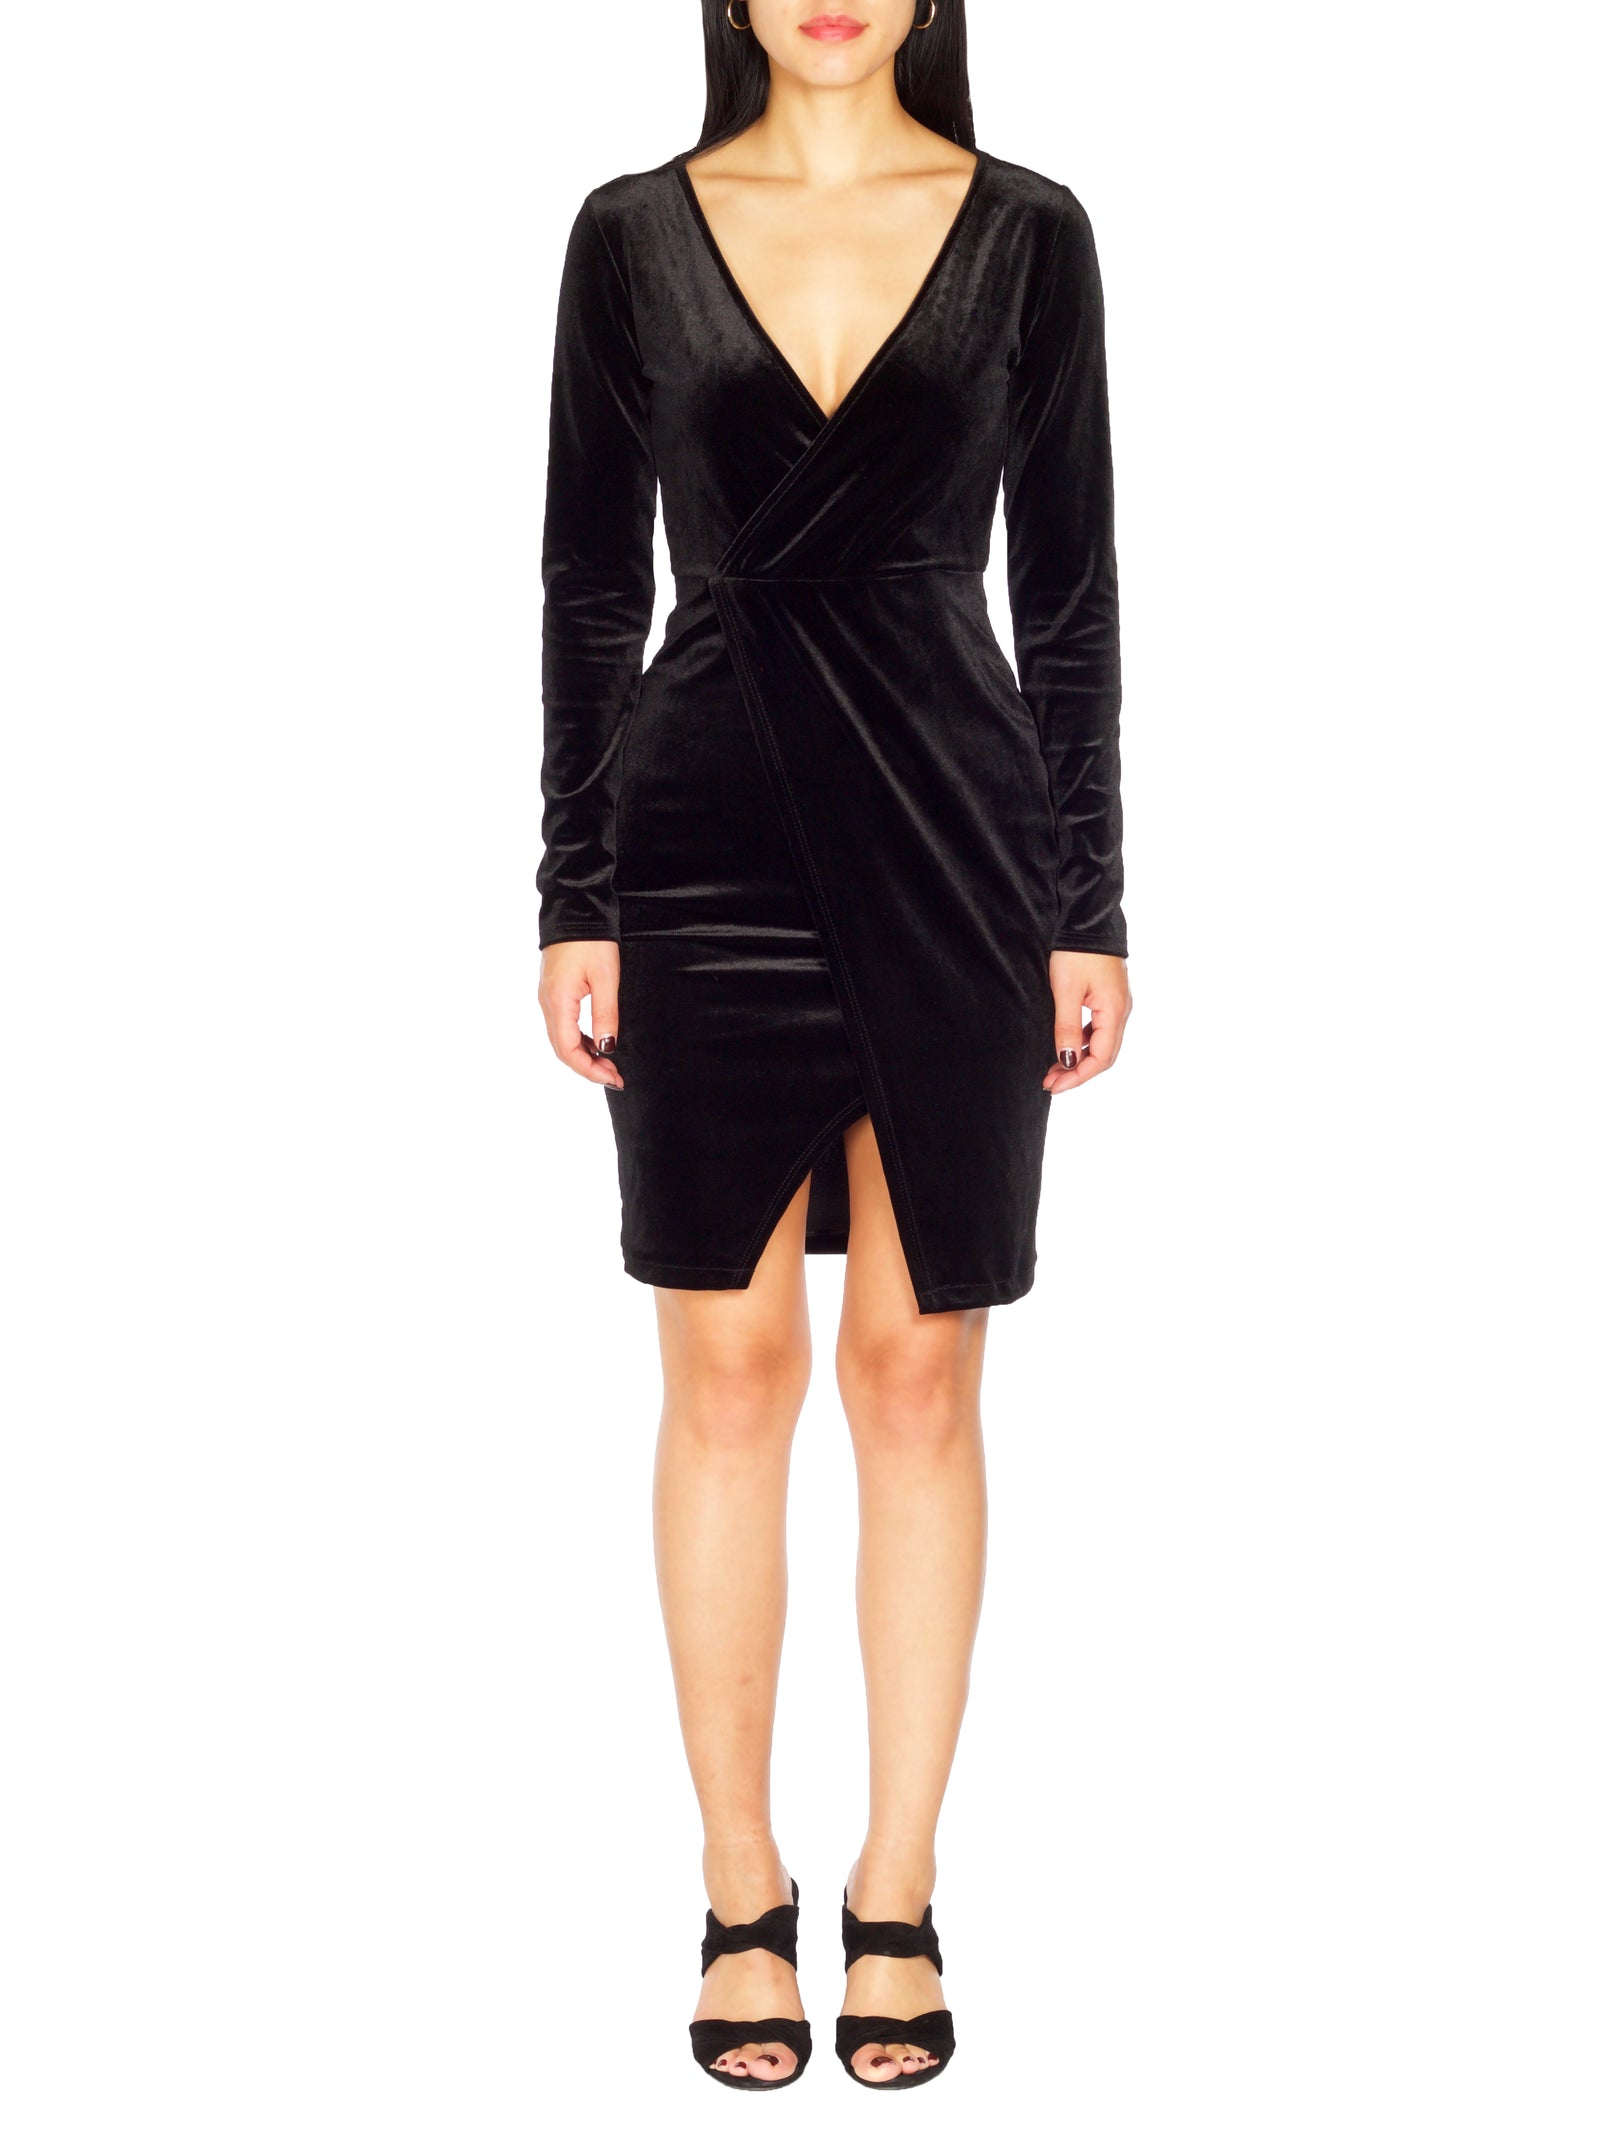 JUJU Velvet Wrap Dress - PRADEGAL